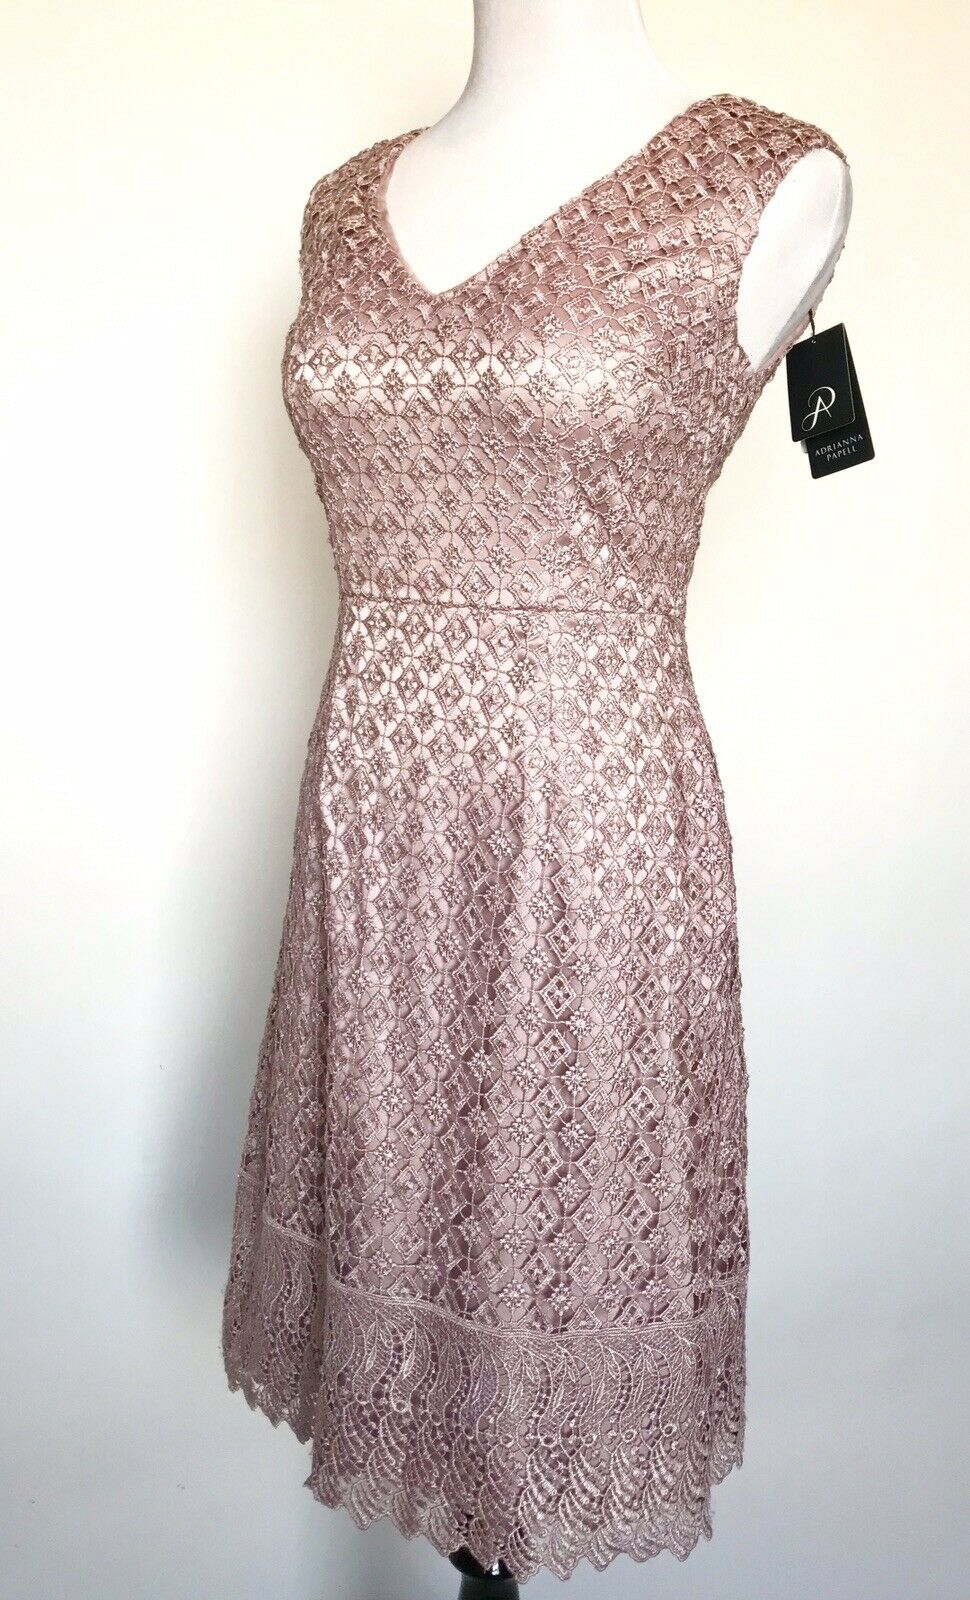 Adrianna Papell Pink Sateen Lace Dress NWT Size 2 Retails  179 Price  95